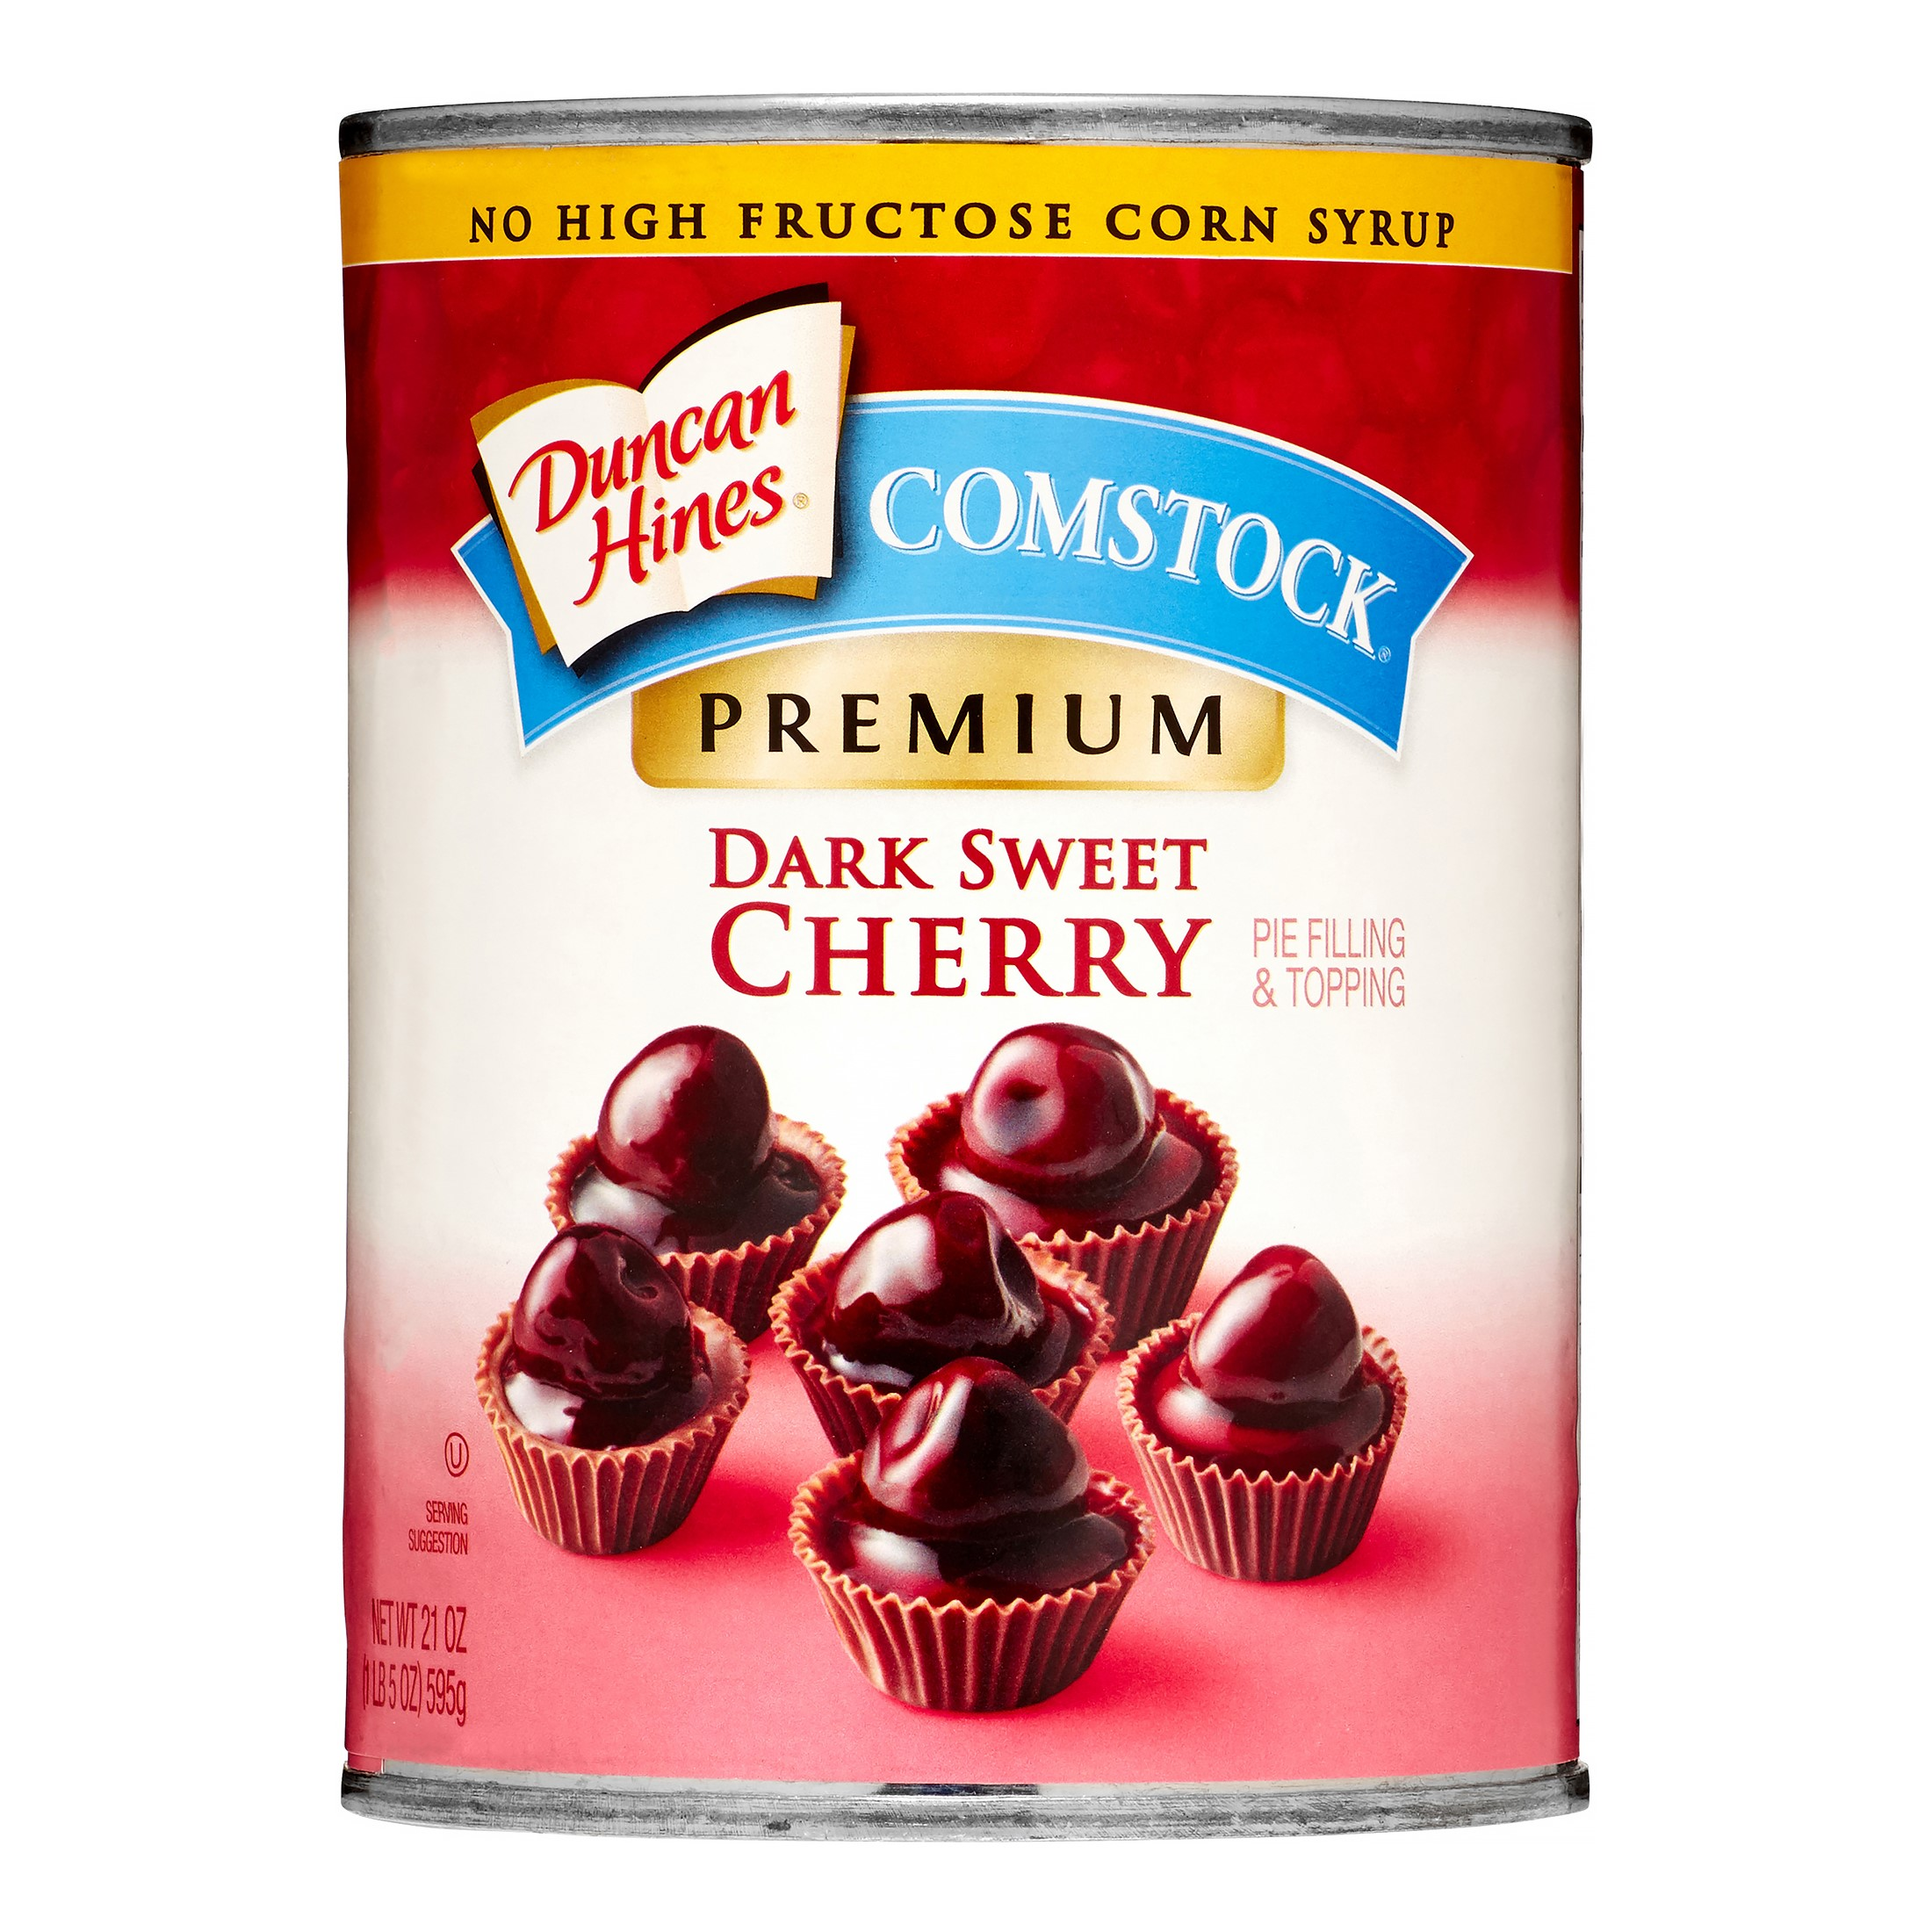 Duncan Hines Comstock Pie Filling & Topping, Dark Sweet Cherry, 21 Oz